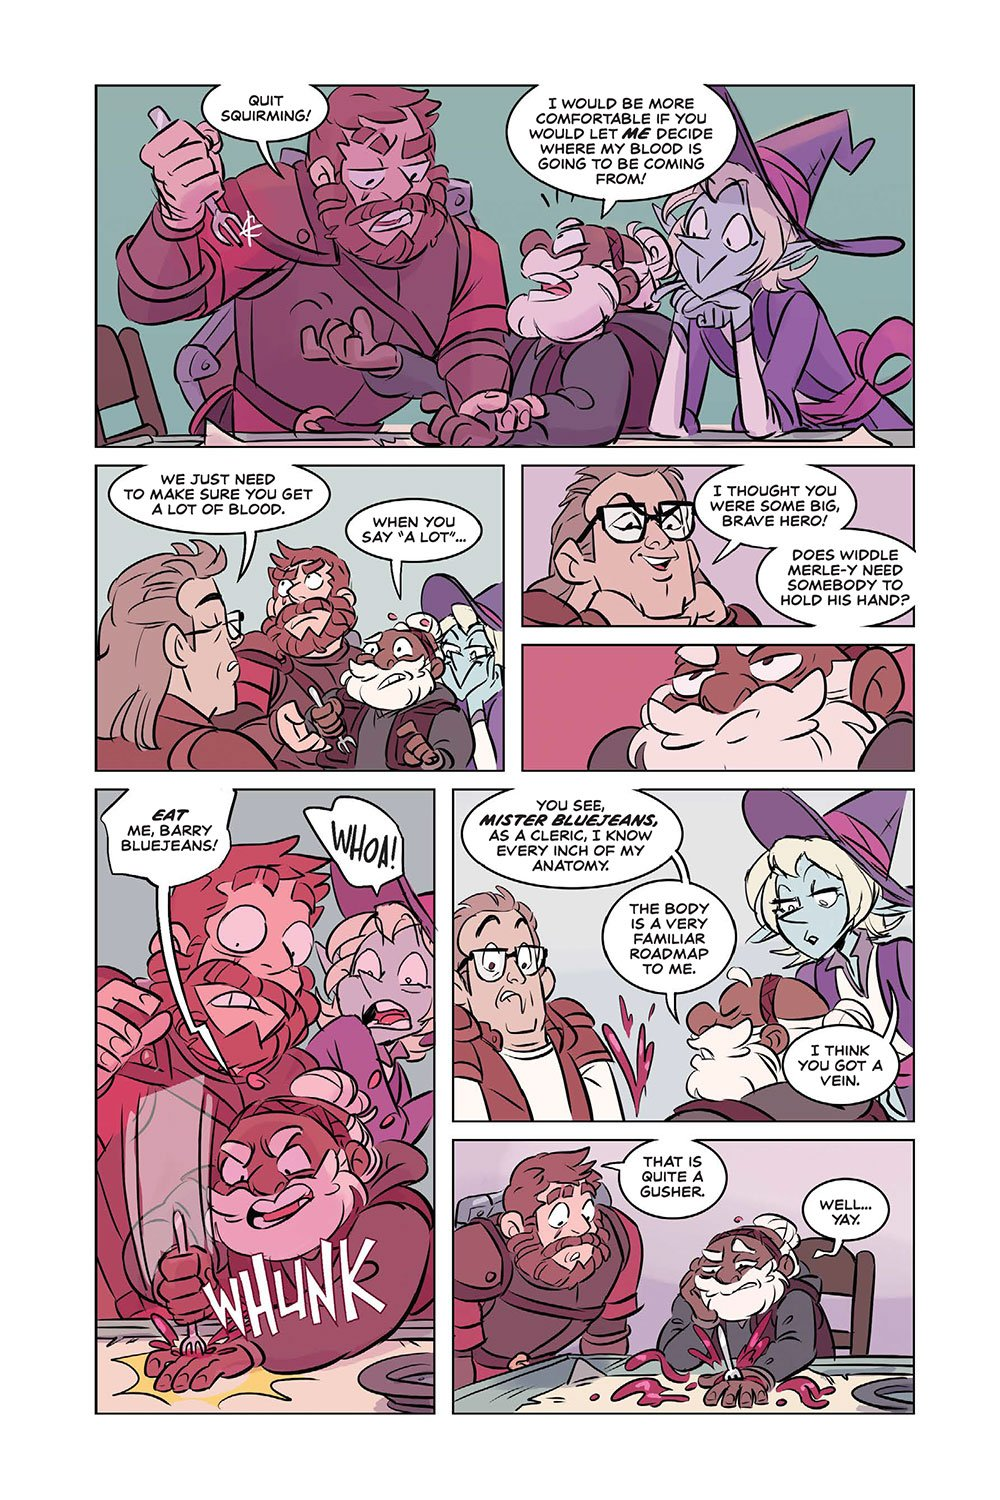 """The Adventure Zone on Twitter: """"Are you prepared for THE ADVENTURE ZONE graphic novel?! Just TWO"""